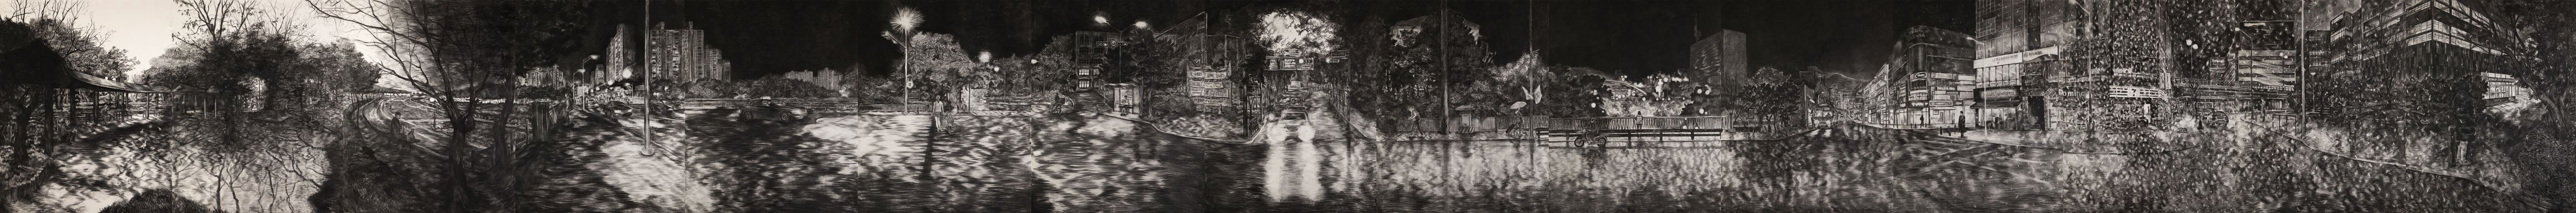 Jwa Haesun, The Most Ordinary Stories (2017–2018 panorama view). Charcoal on paper. 161 x 965 cm. Courtesy  Arario Gallery Samcheong, Seoul.